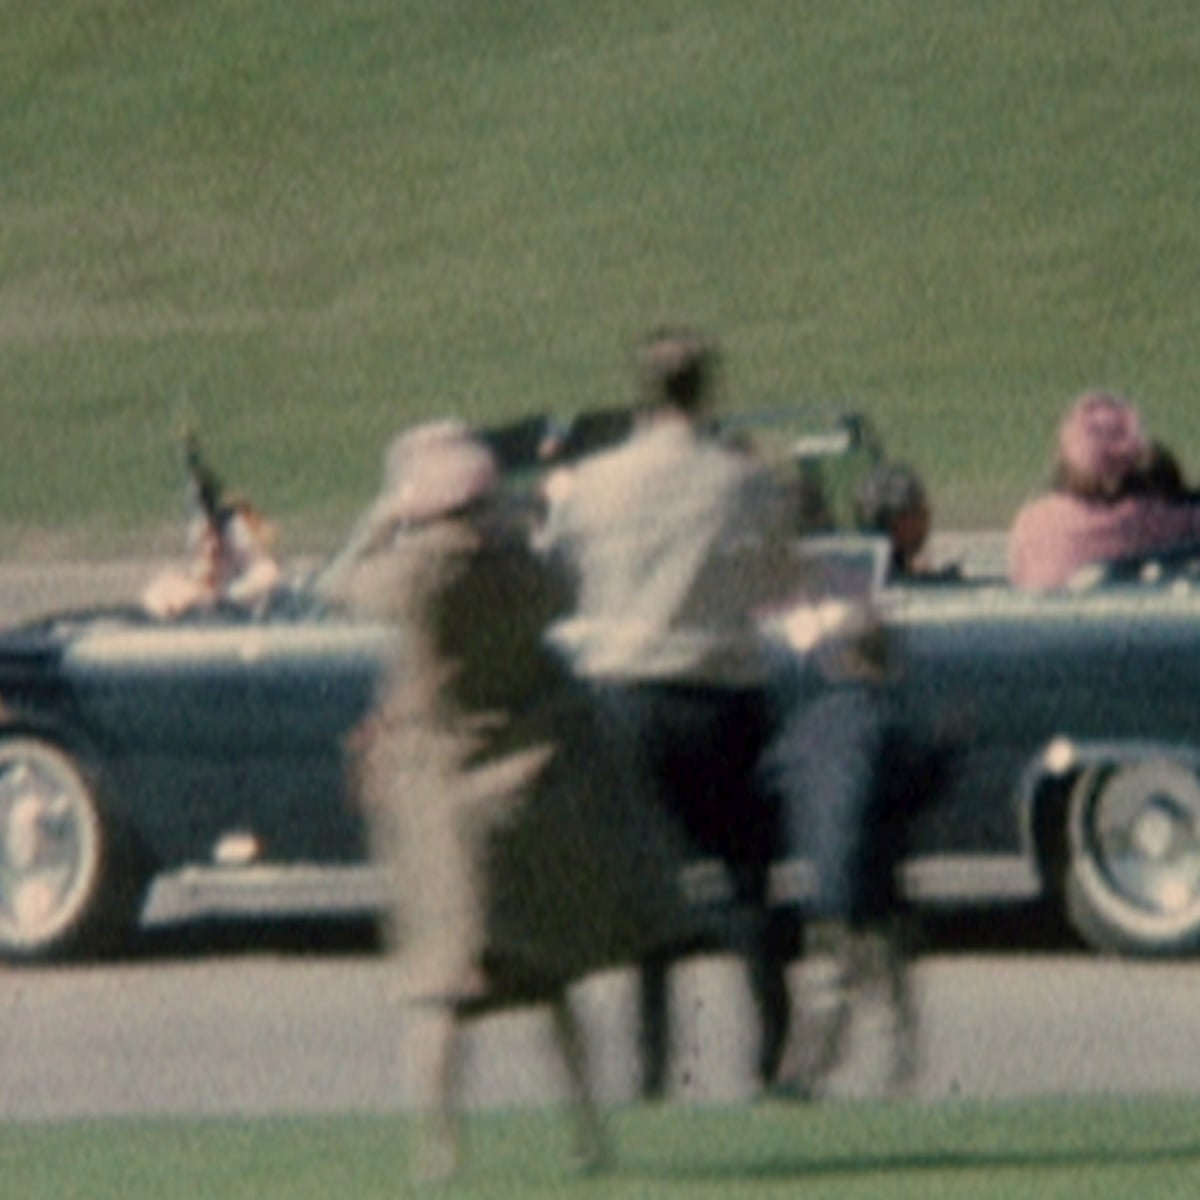 Jfk Assassination Film Woman Sues Us Government For Return Of Lost Footage Us News The Guardian